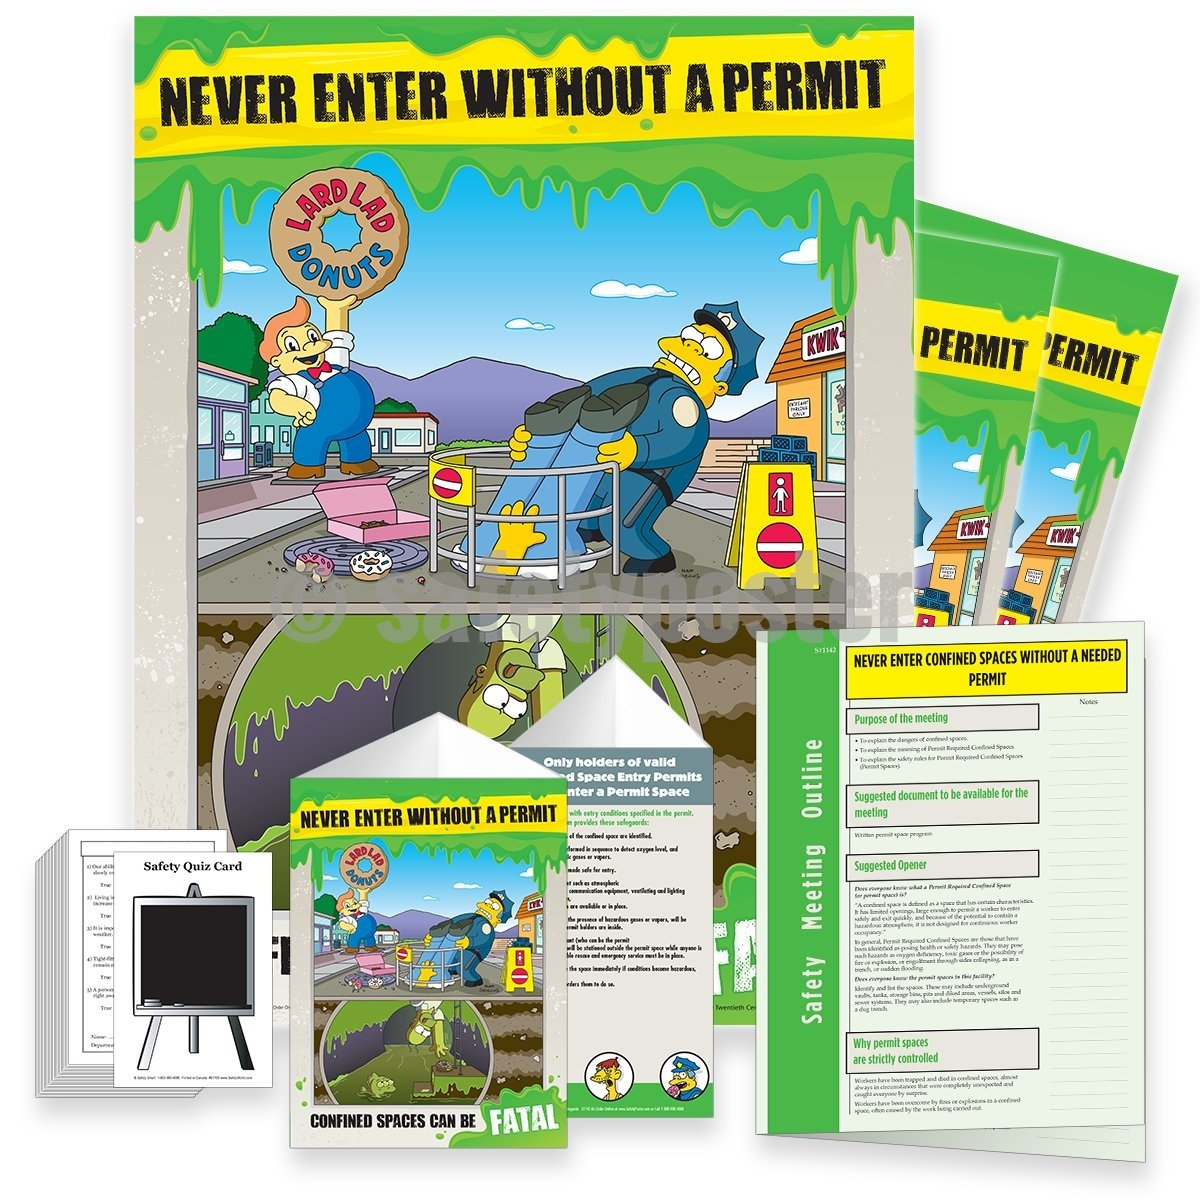 Safety Meeting Kit - Never Enter Without A Permit Confined Spaces Can Be Fatal Kits